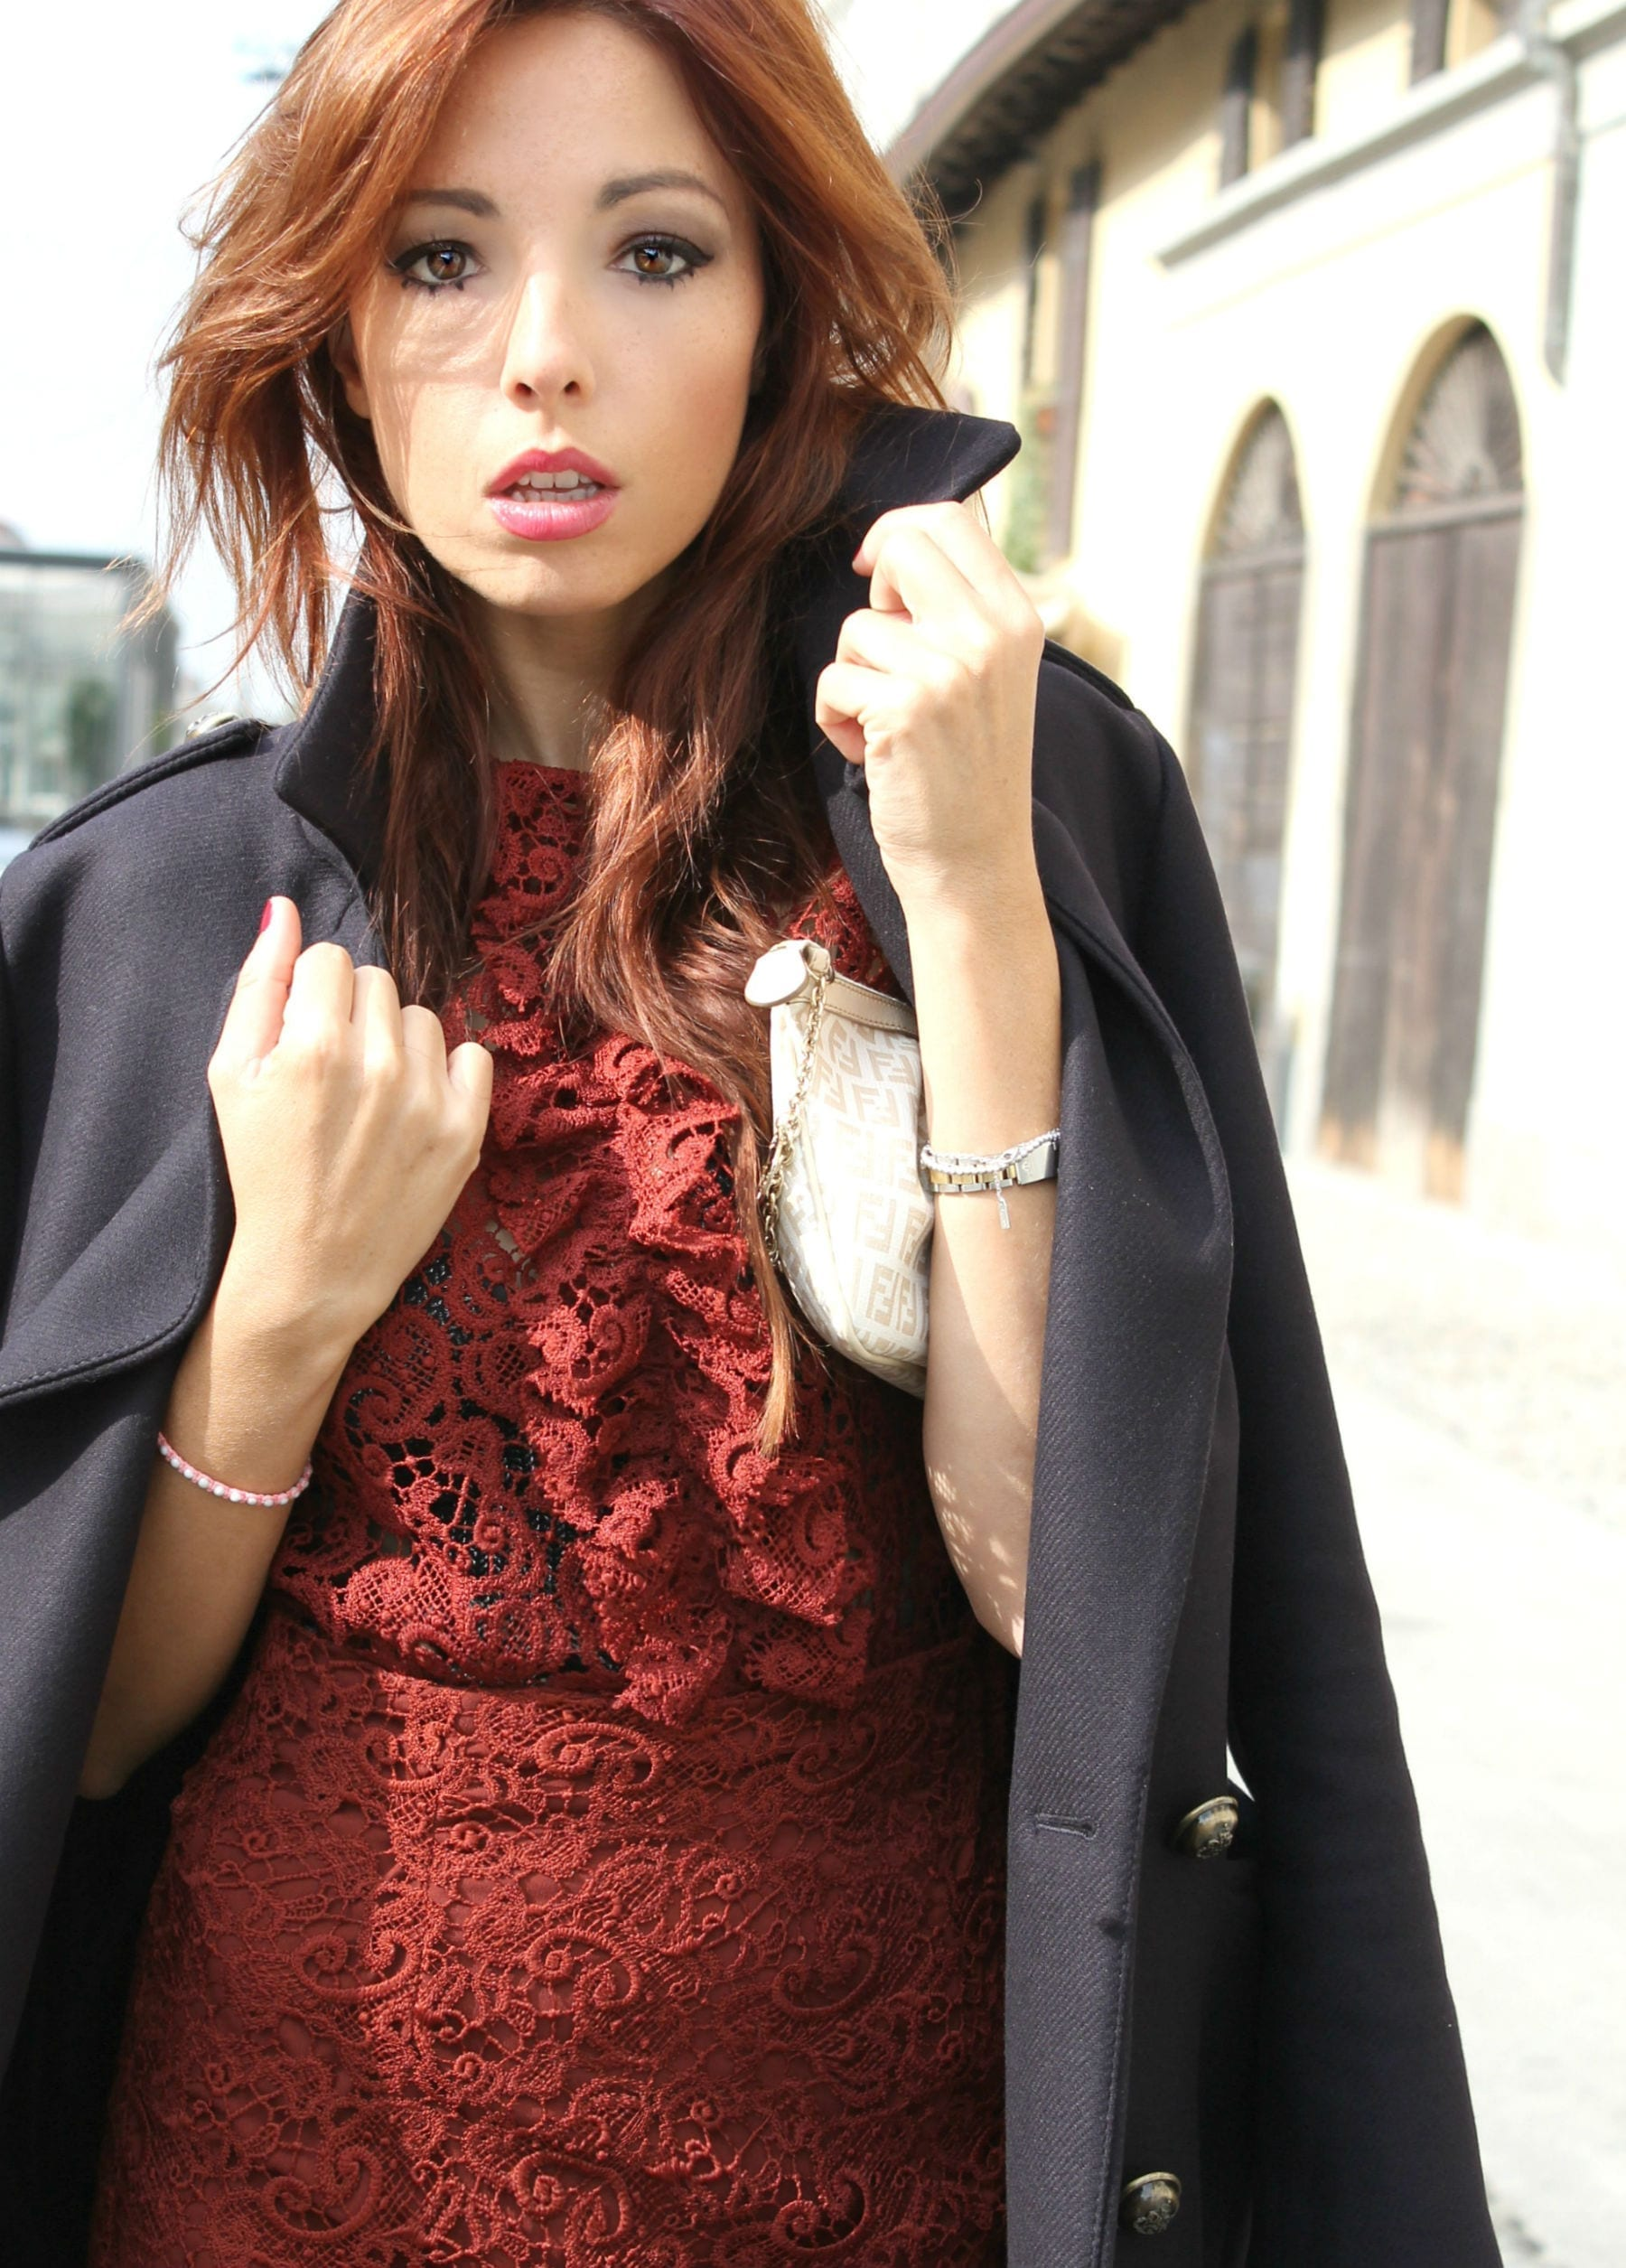 moda e social network, theladycracy.it, elisa bellino, fashion blog italia, fashion blogger italiane, zara coat, marsala look, total look zara